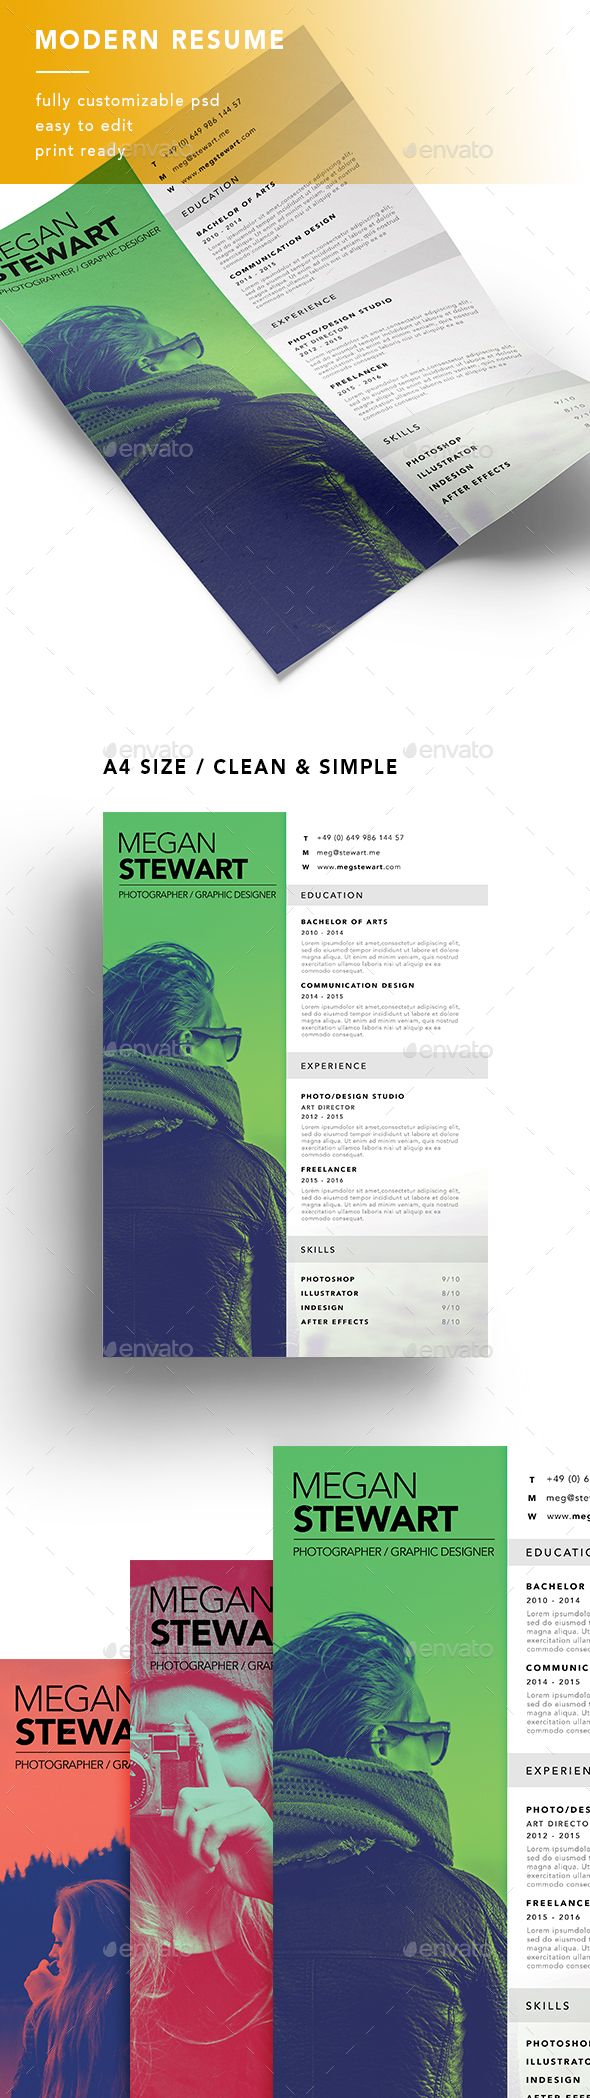 17 best ideas about modern resume template creative 17 best ideas about modern resume template creative cv design cv ideas and creative cv template